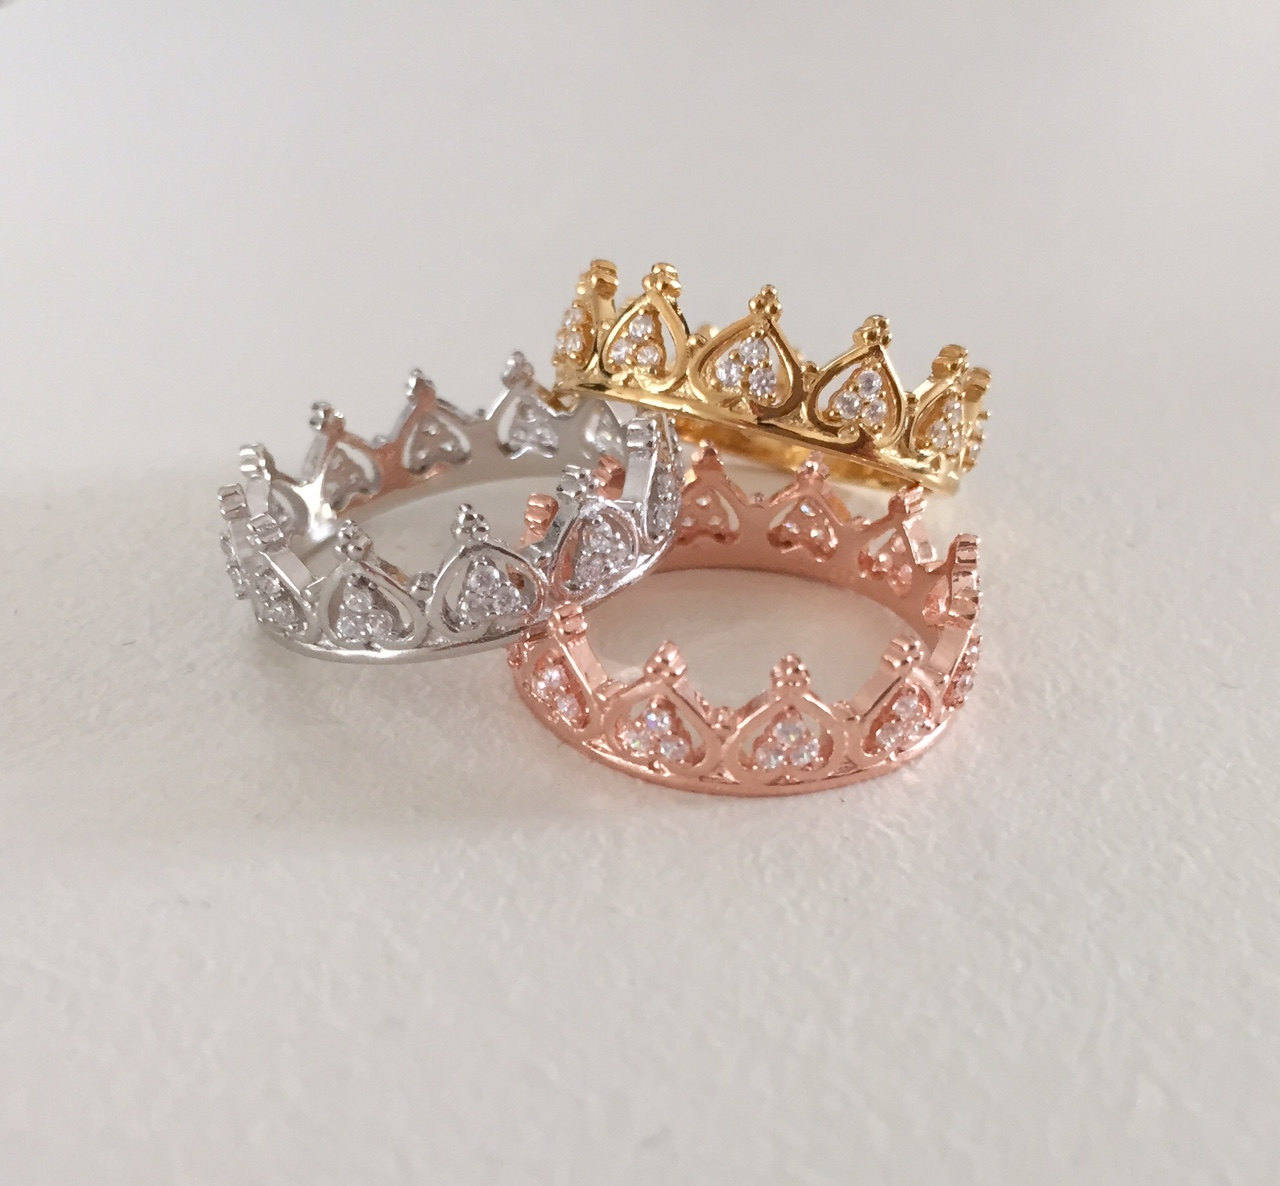 Princess Crown Ring – Tiara Ring – Stackable  | Ringscollection With Regard To 2017 Princess Tiara Crown Rings (View 16 of 25)